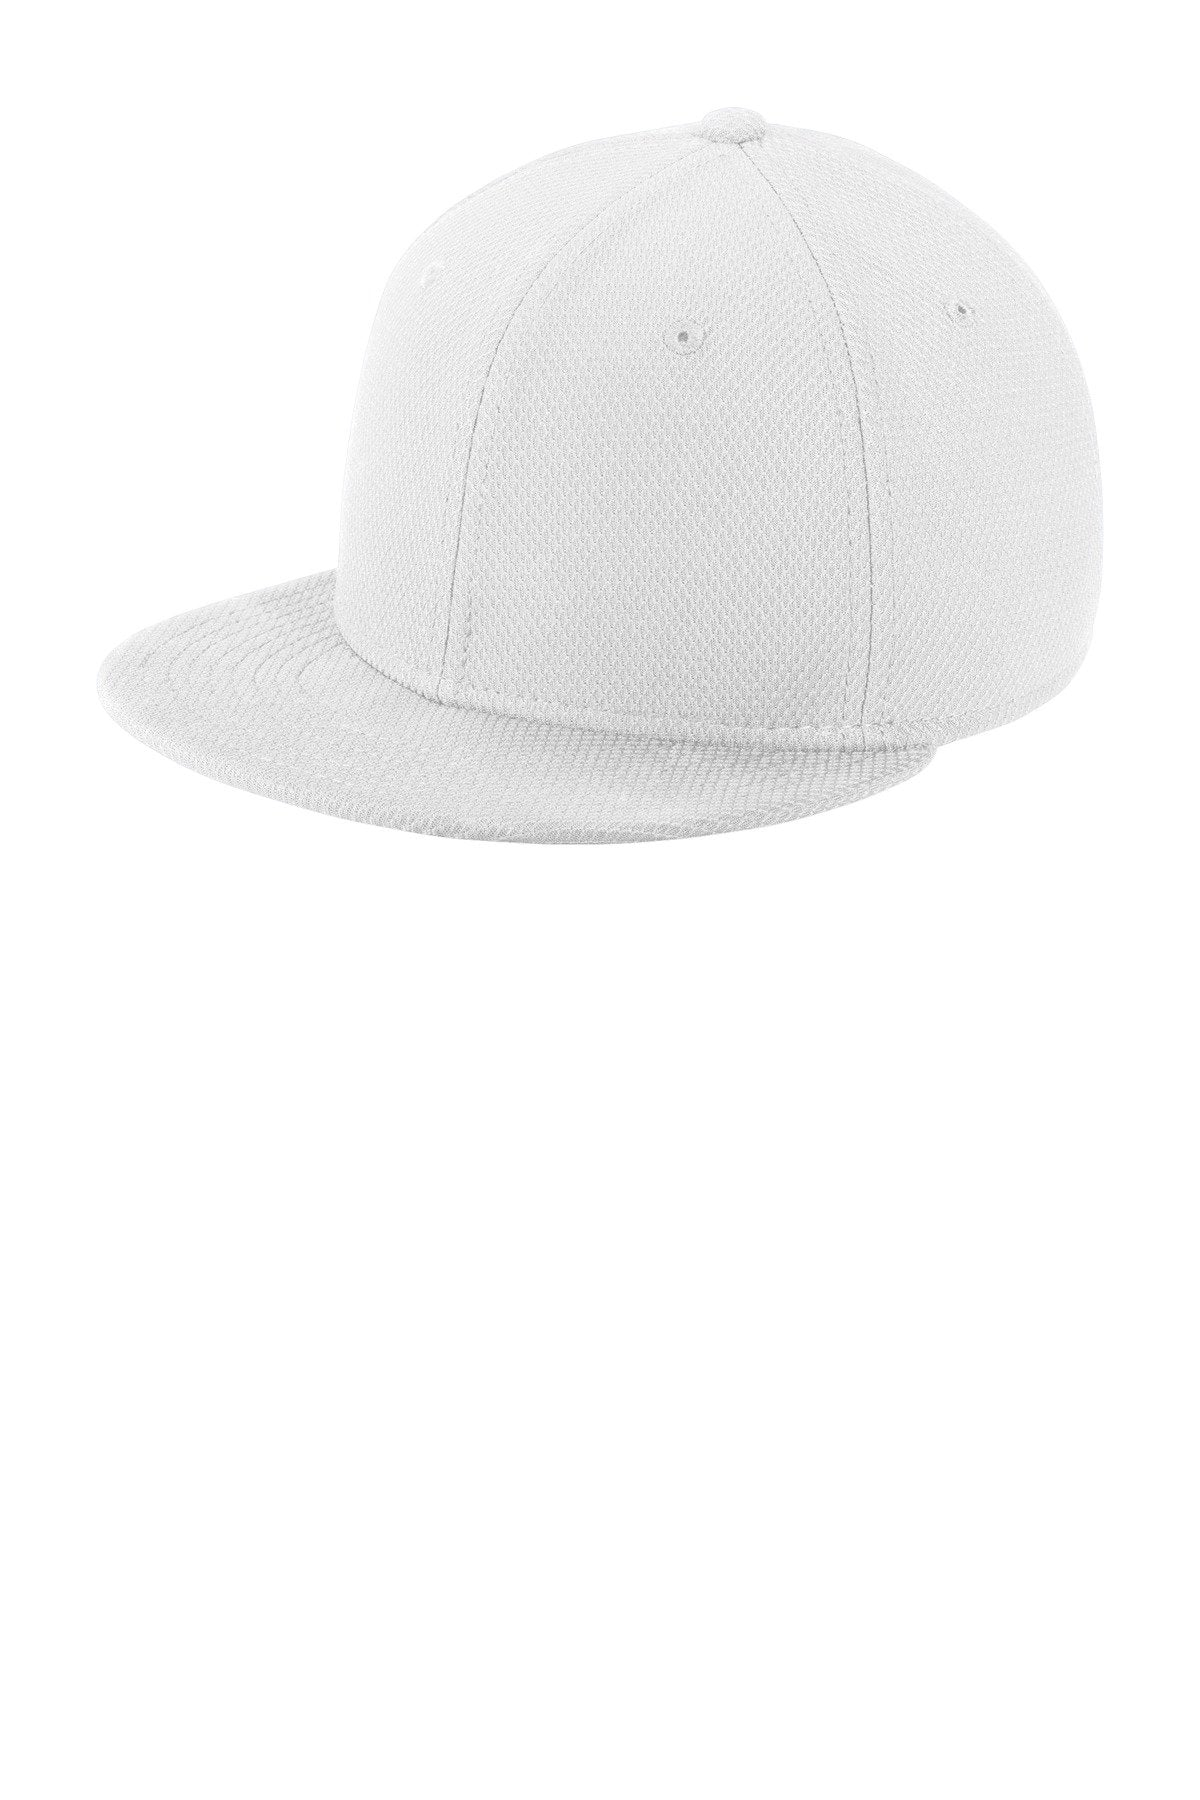 White - New Era NE304